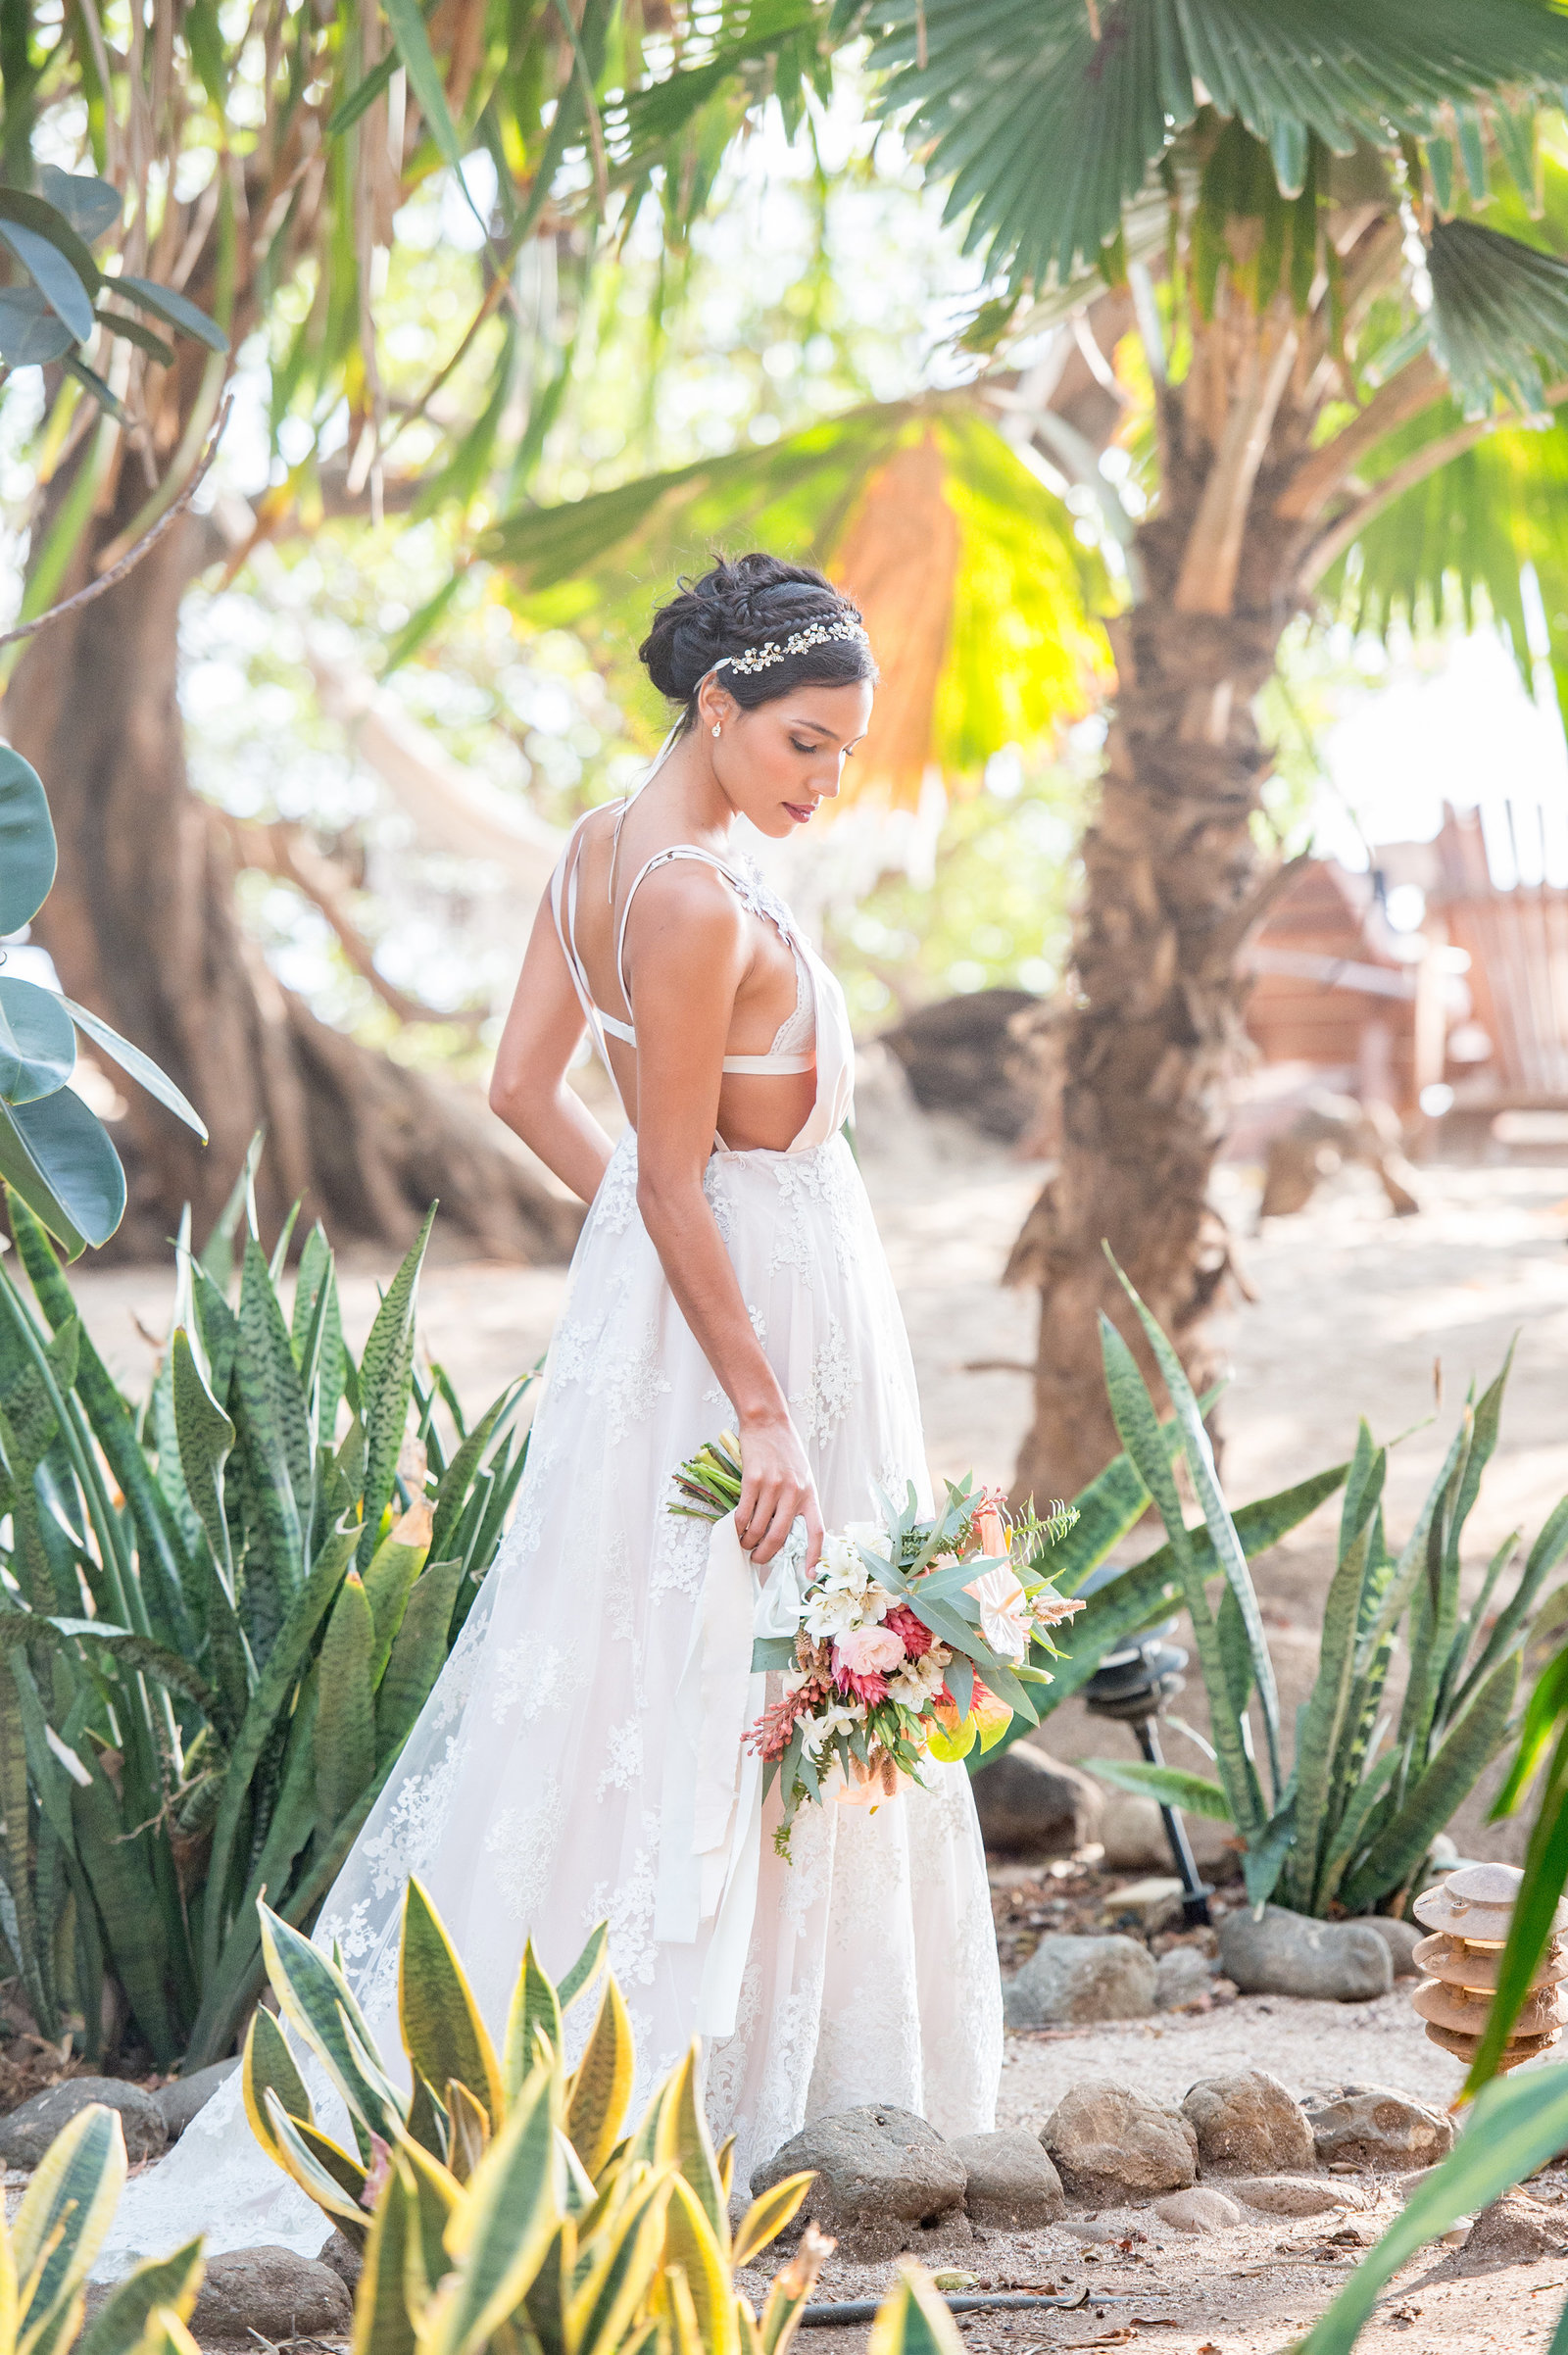 02-Destination Wedding Photography - Costa Rica Wedding Photographers - 15